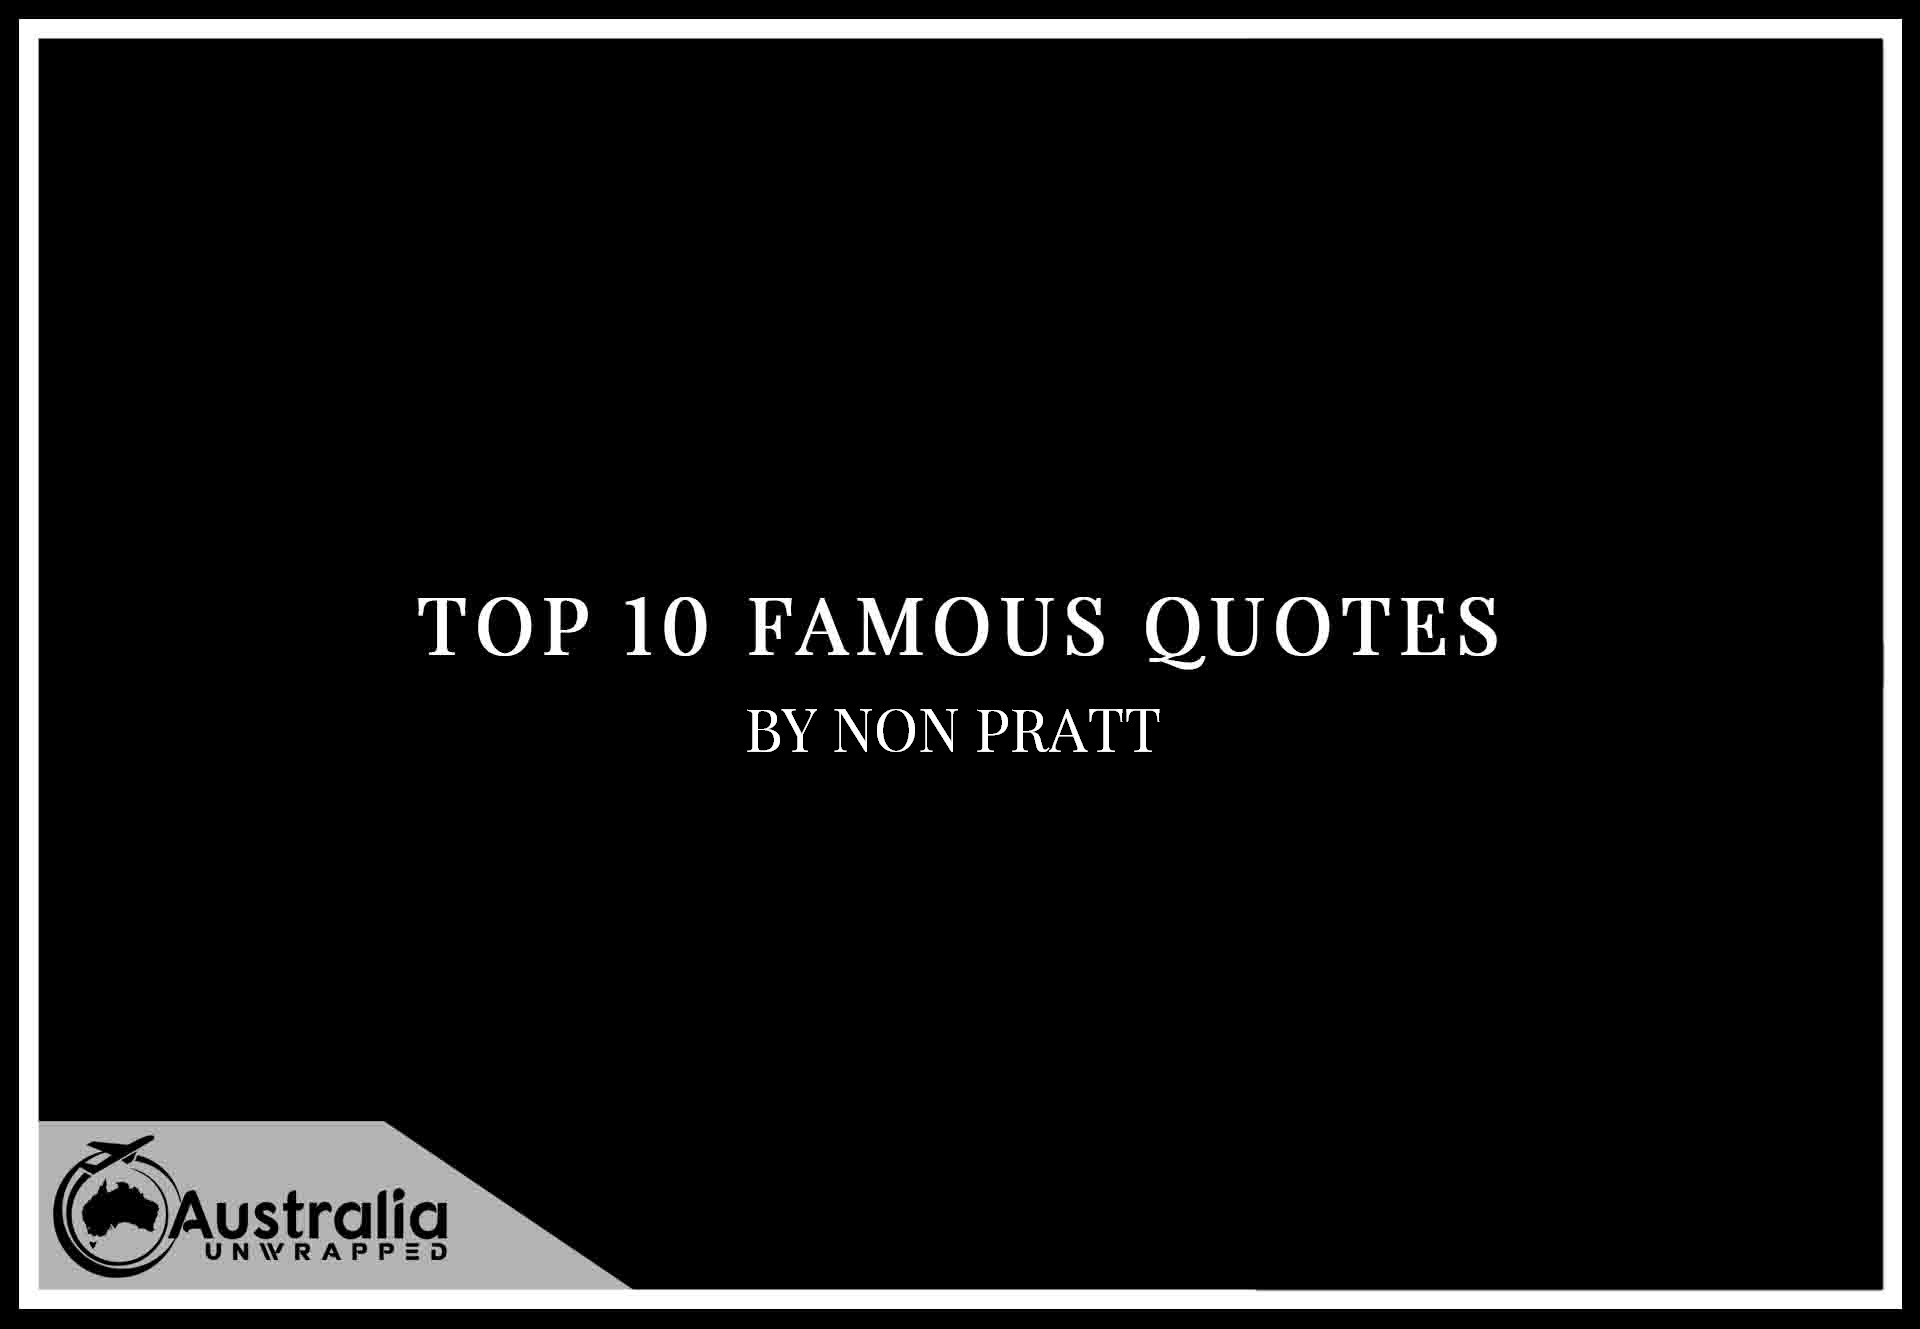 Top 10 Famous Quotes by Author Non Pratt